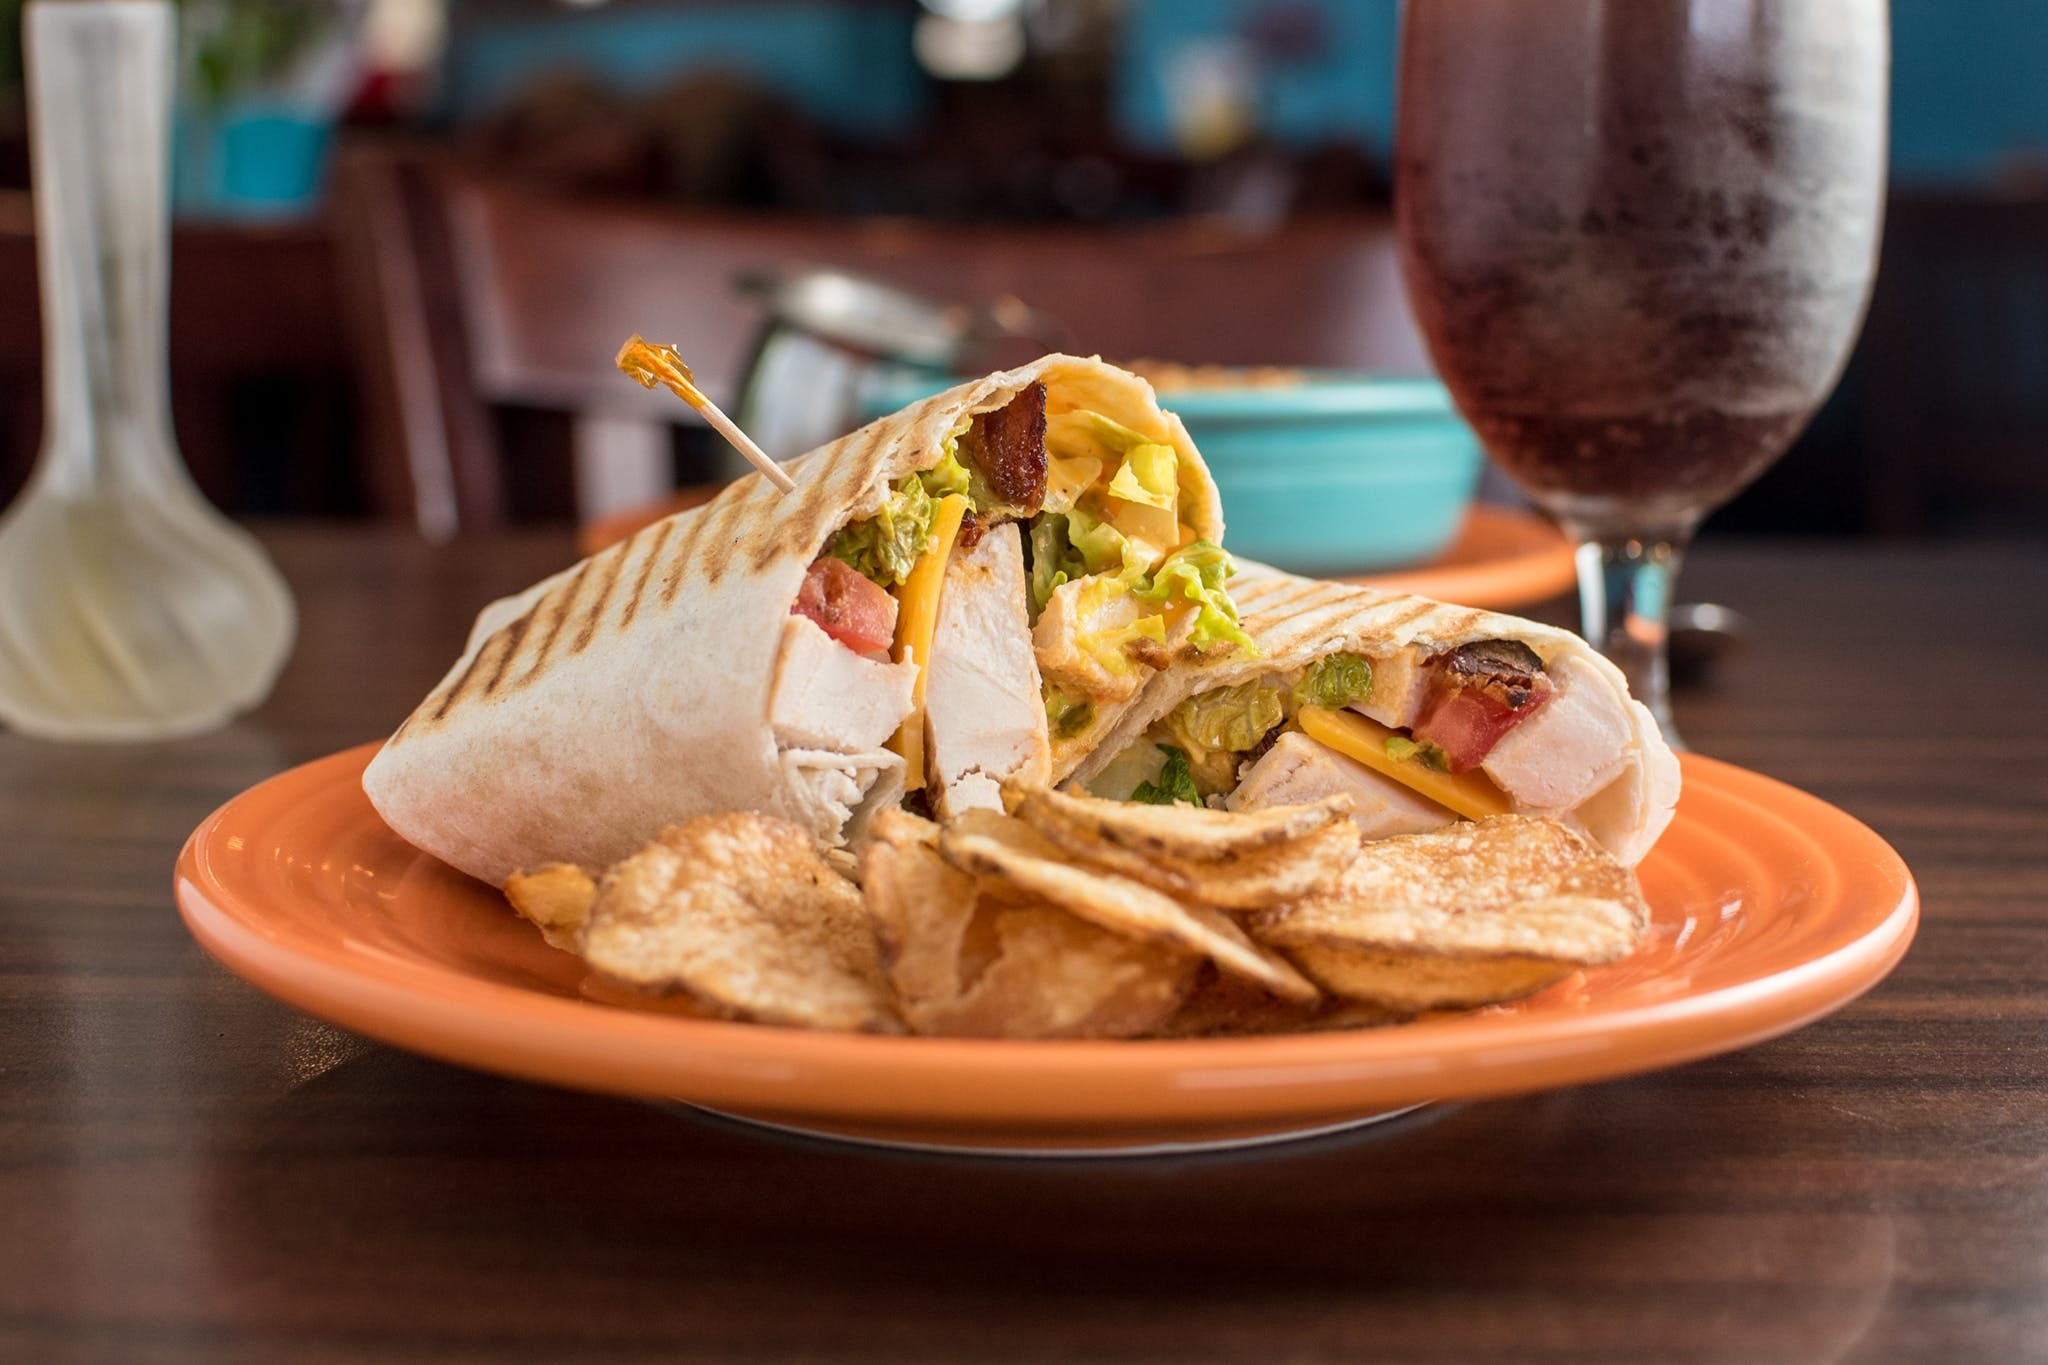 Chicken Bacon Avocado Wrap from Yola's Cafe in Madison, WI